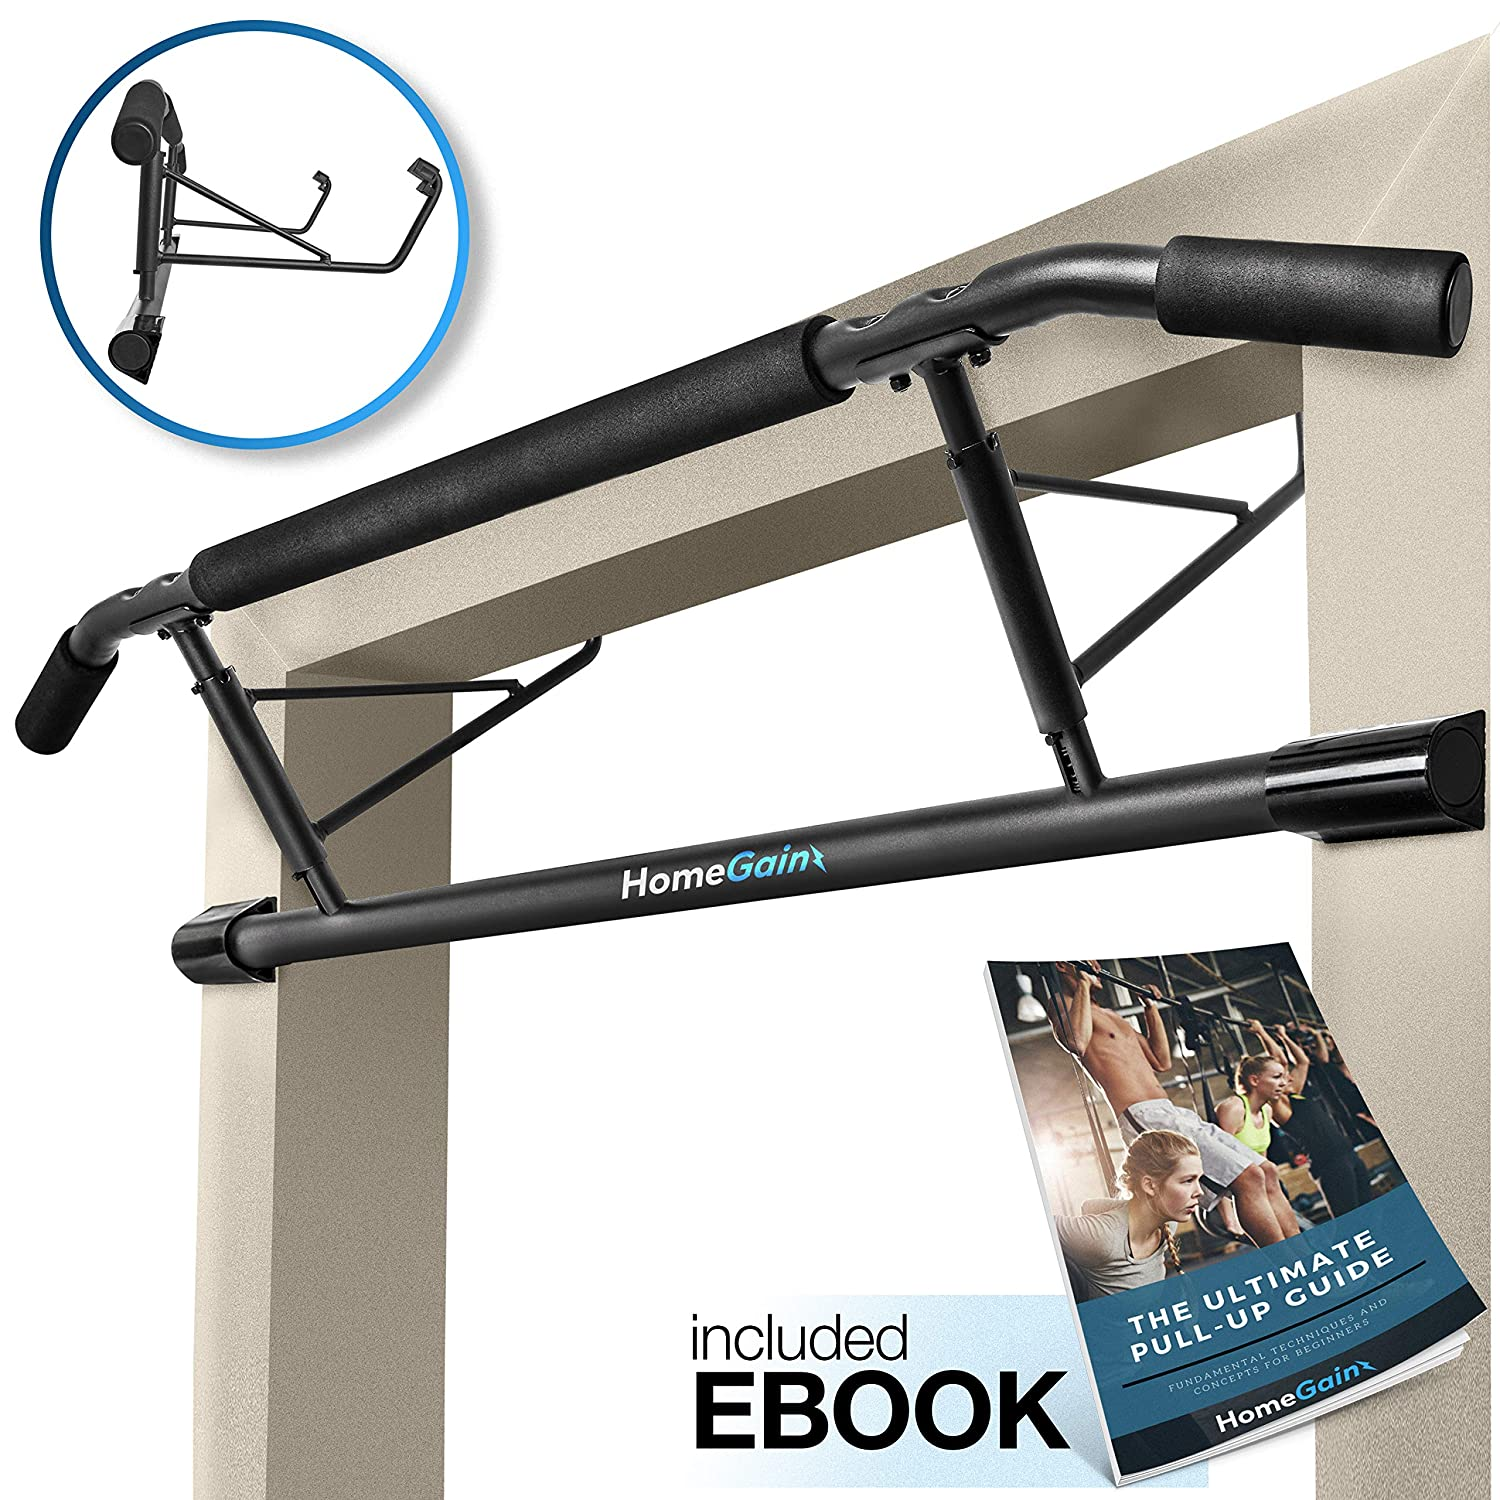 Homegainz Pull Up Bar for Doorway, No Screws, Door Chin Up Bar for Home Gym